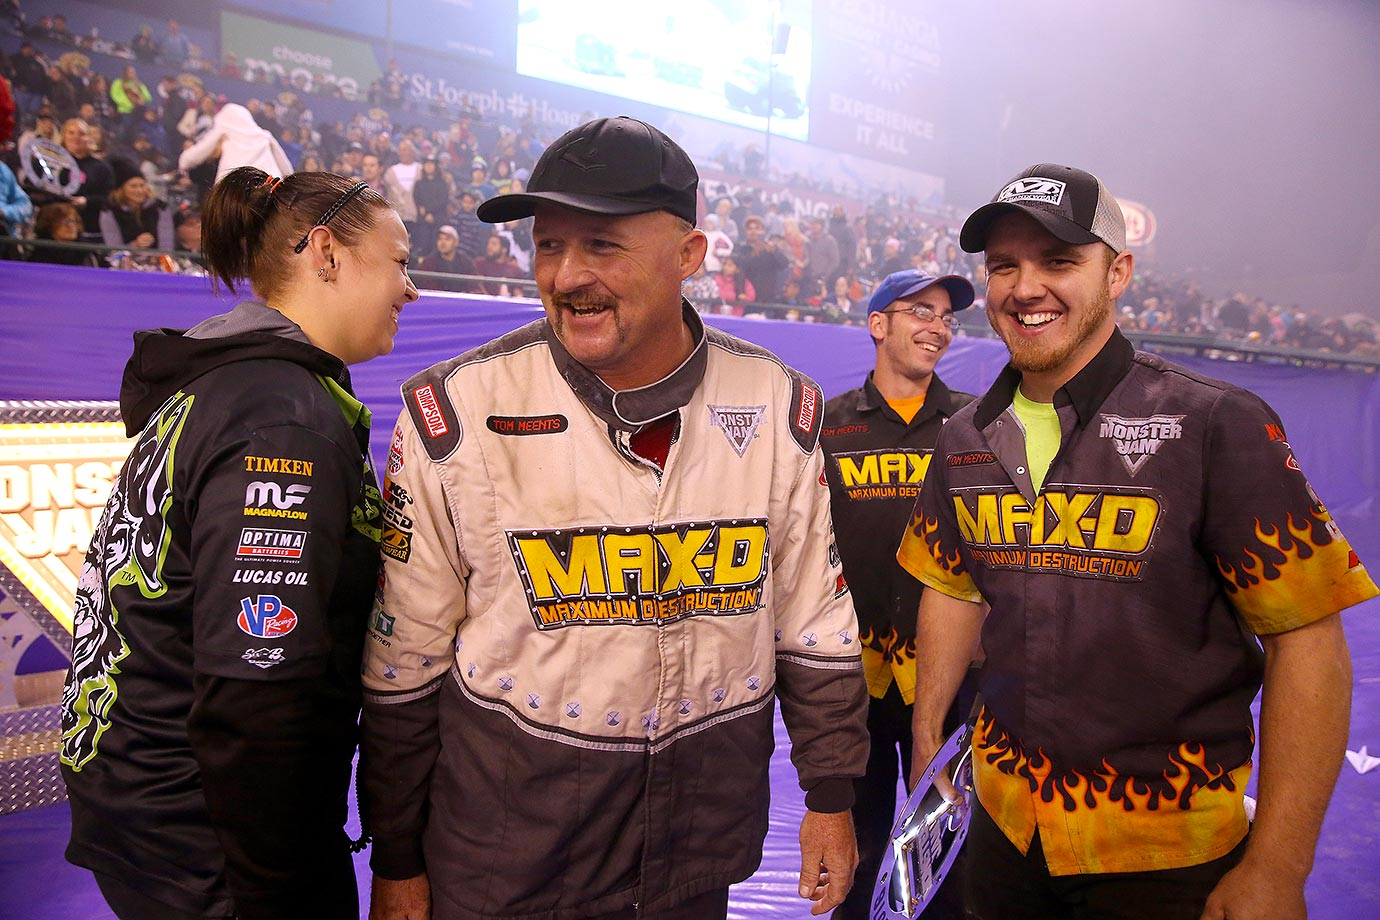 Monster Truck's 'Max-D' driver Neil Elliott (center) is all smiles on the podium after winning the Monster Jam.